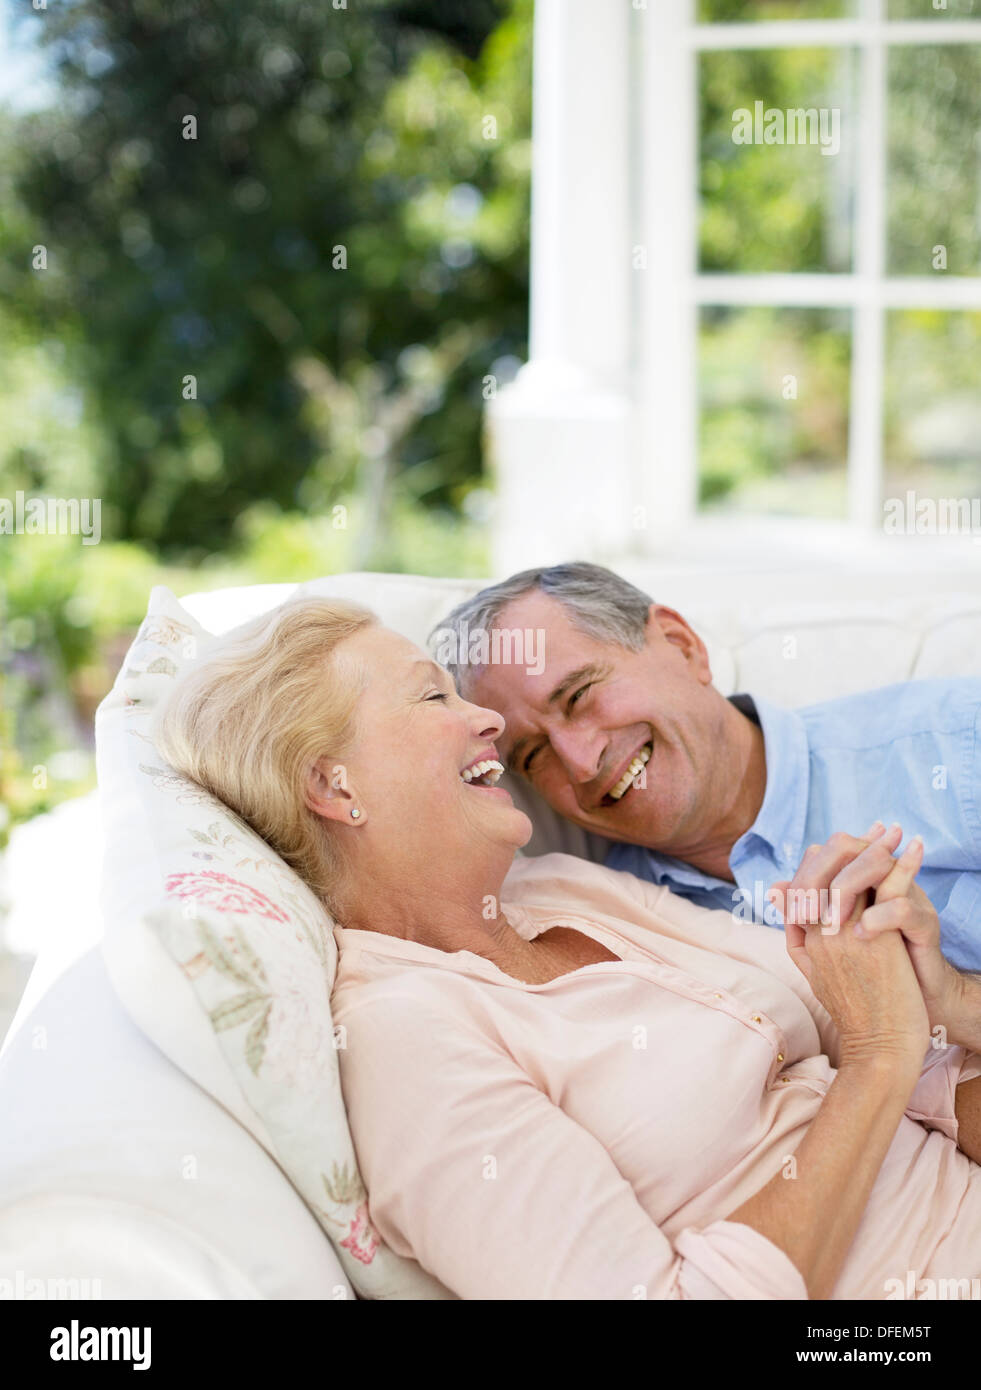 Senior couple laying on patio sofa and holding hands - Stock Image